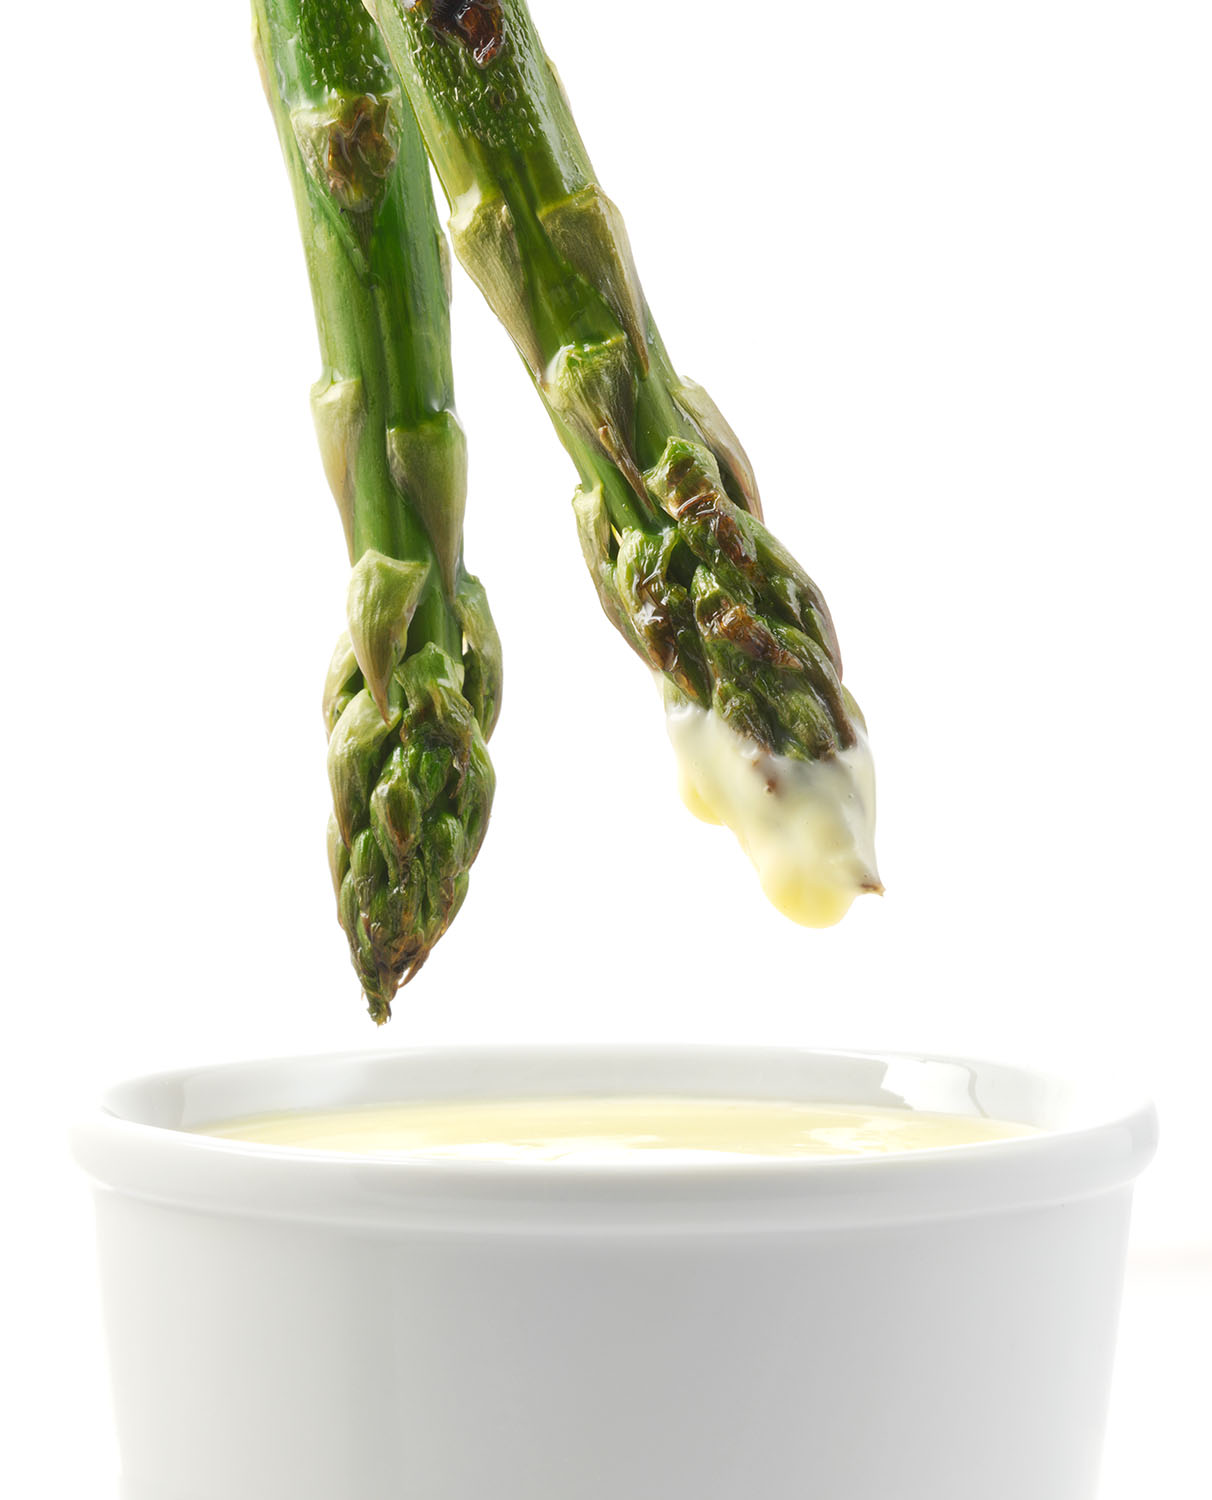 Food Photography Photographer London UK Asparagus Hollandaise